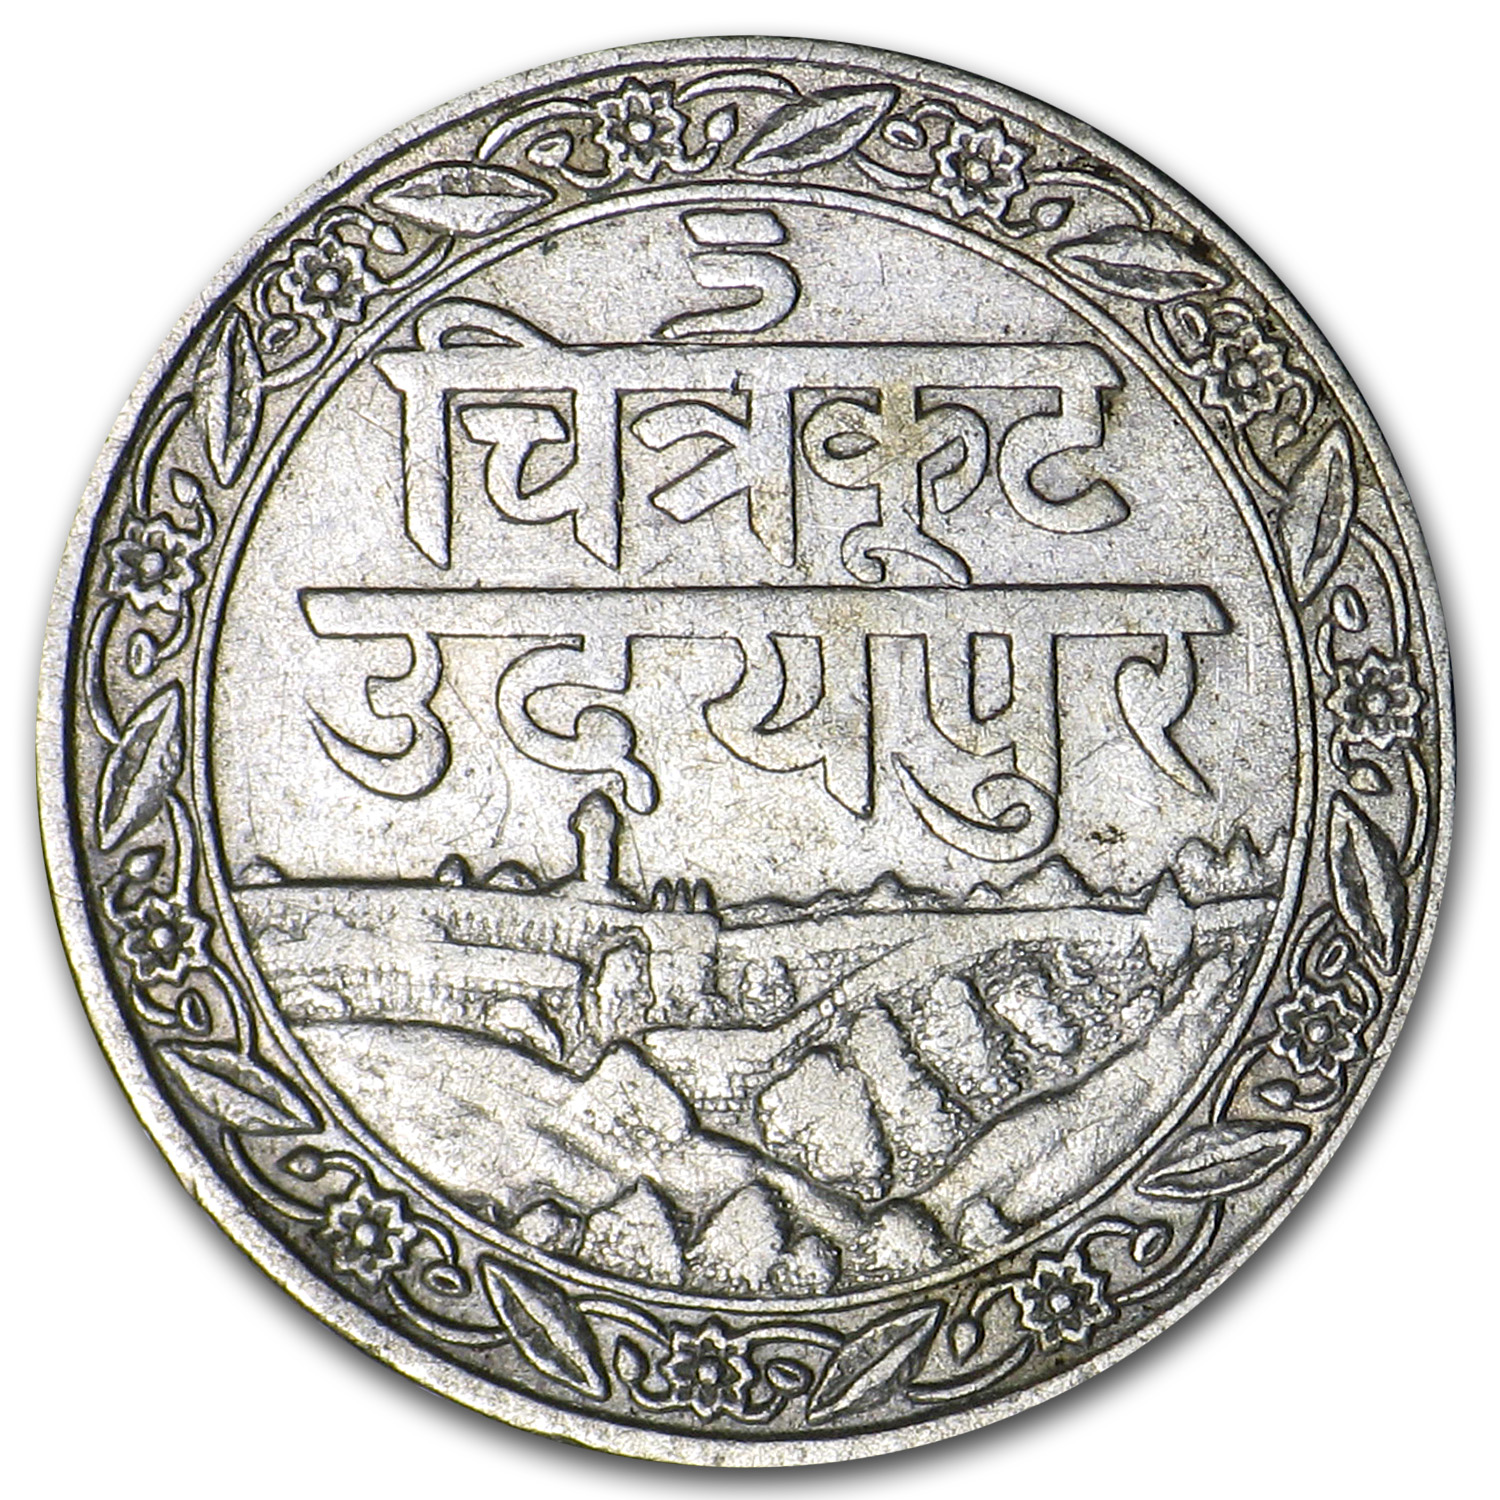 VS1928/1985 India Mewar 1/8 Silver Rupee VF+